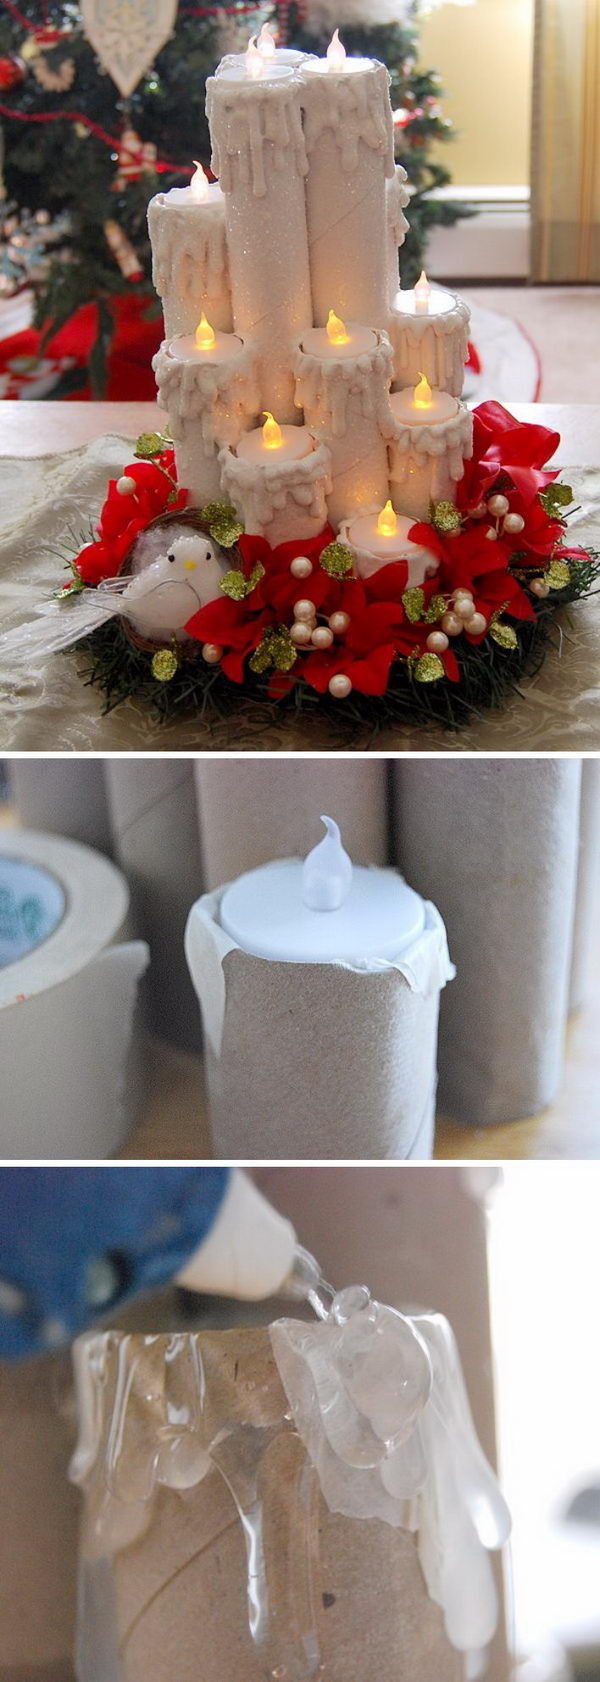 Best ideas about Christmas DIY Decoration Ideas . Save or Pin 30 DIY Christmas Decoration Ideas Hative Now.